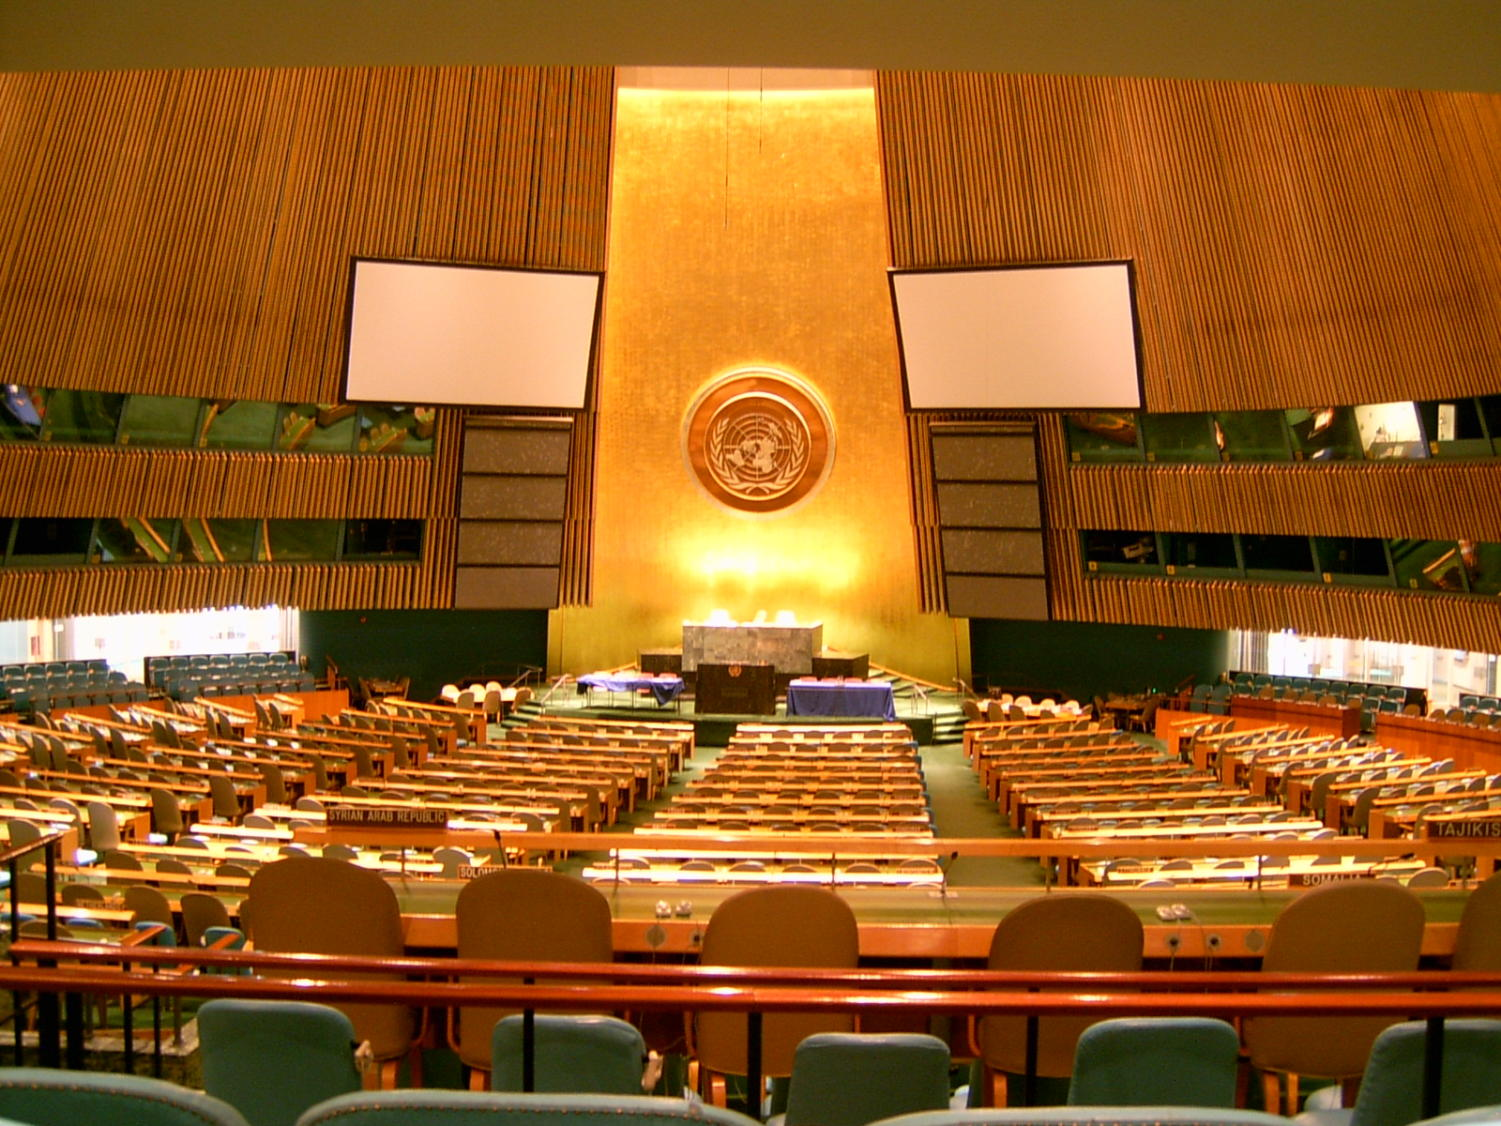 Standing empty, the United Nations serves as a meeting ground for countries to collectively deal with international